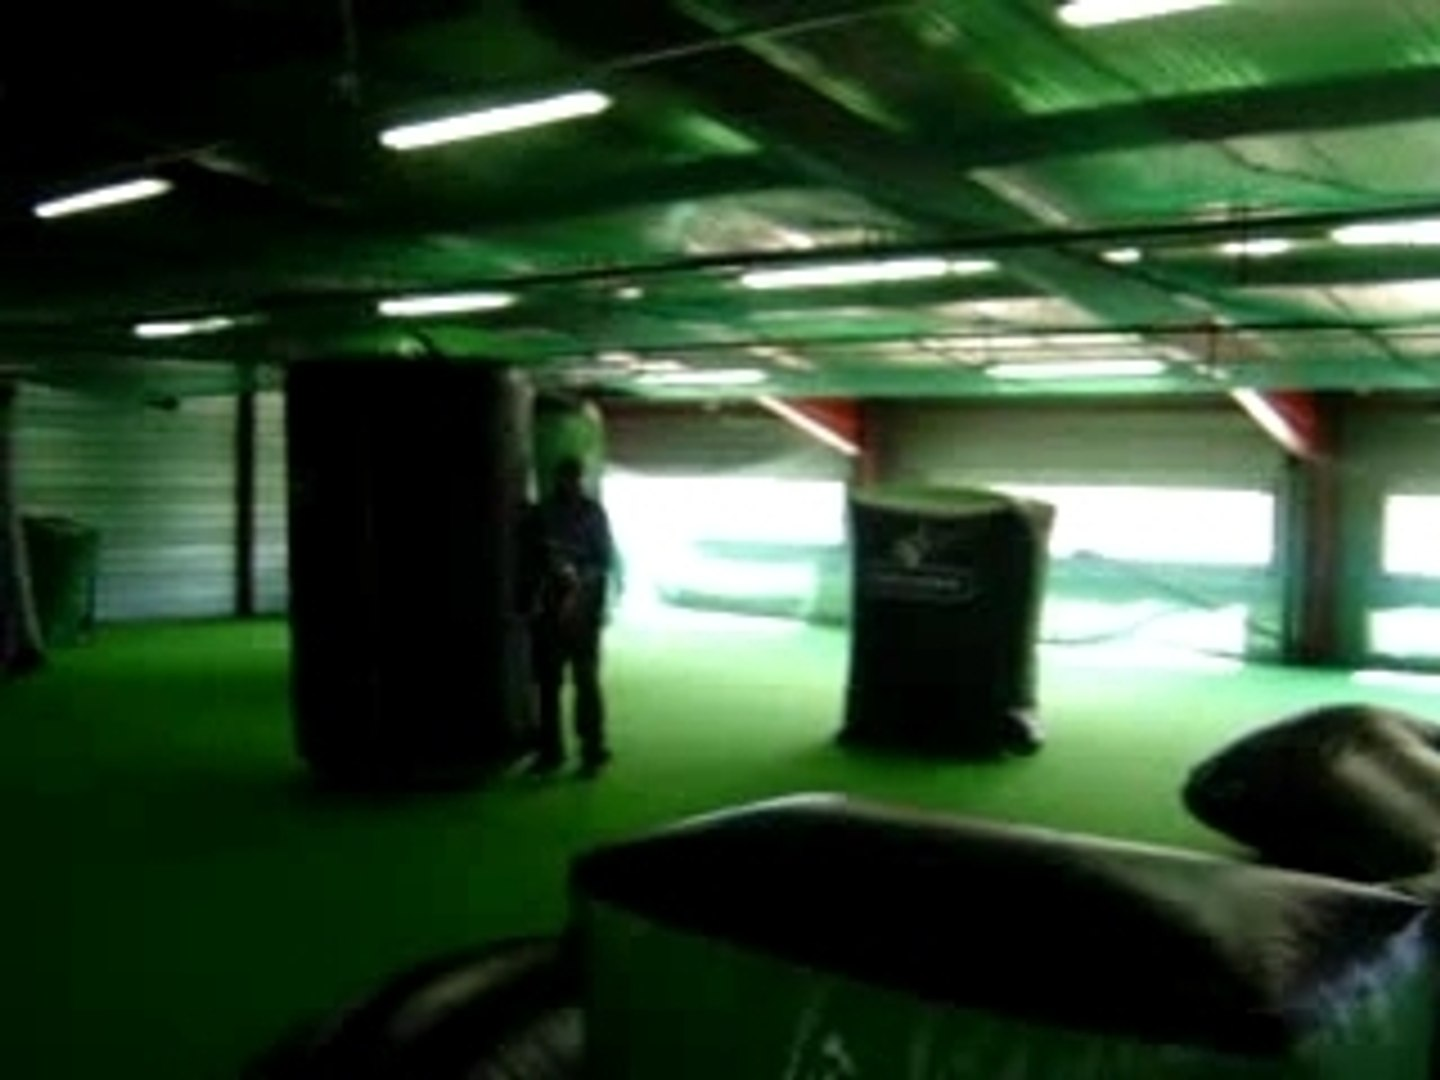 ARENA PAINTBALL BORN IN ESLSASS suite